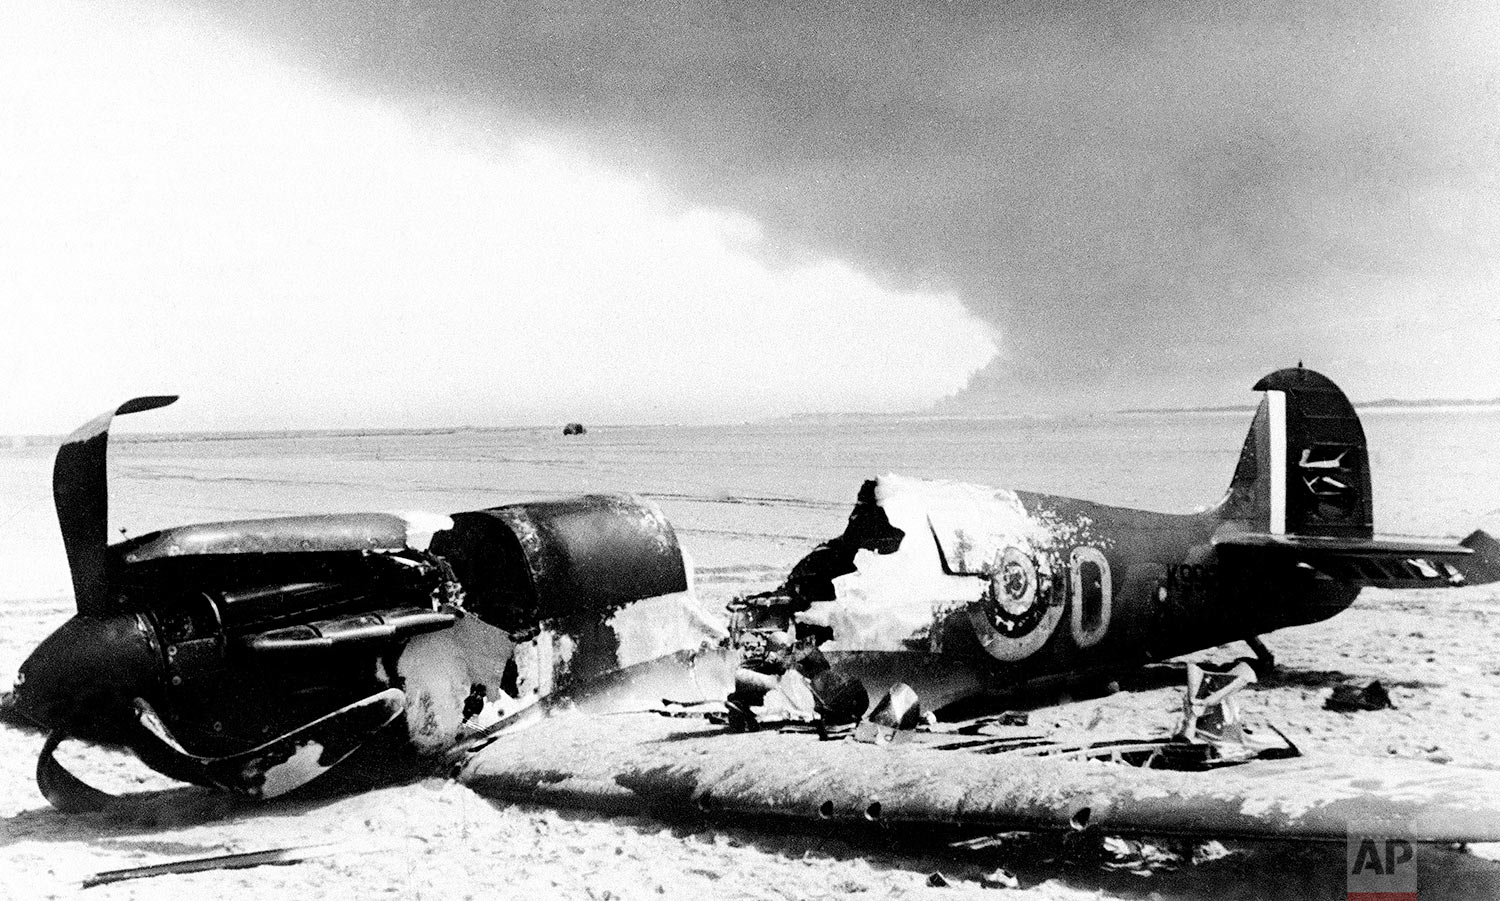 A British Spitfire fighter lays with its cockpit blasted out, after it crashed to the beach at Dunkirk, France on June 6, 1940, the last stand port of the Allied forces which fled from Flanders. Smoke from burning Dunkirk may be seen in the background. (AP Photo)